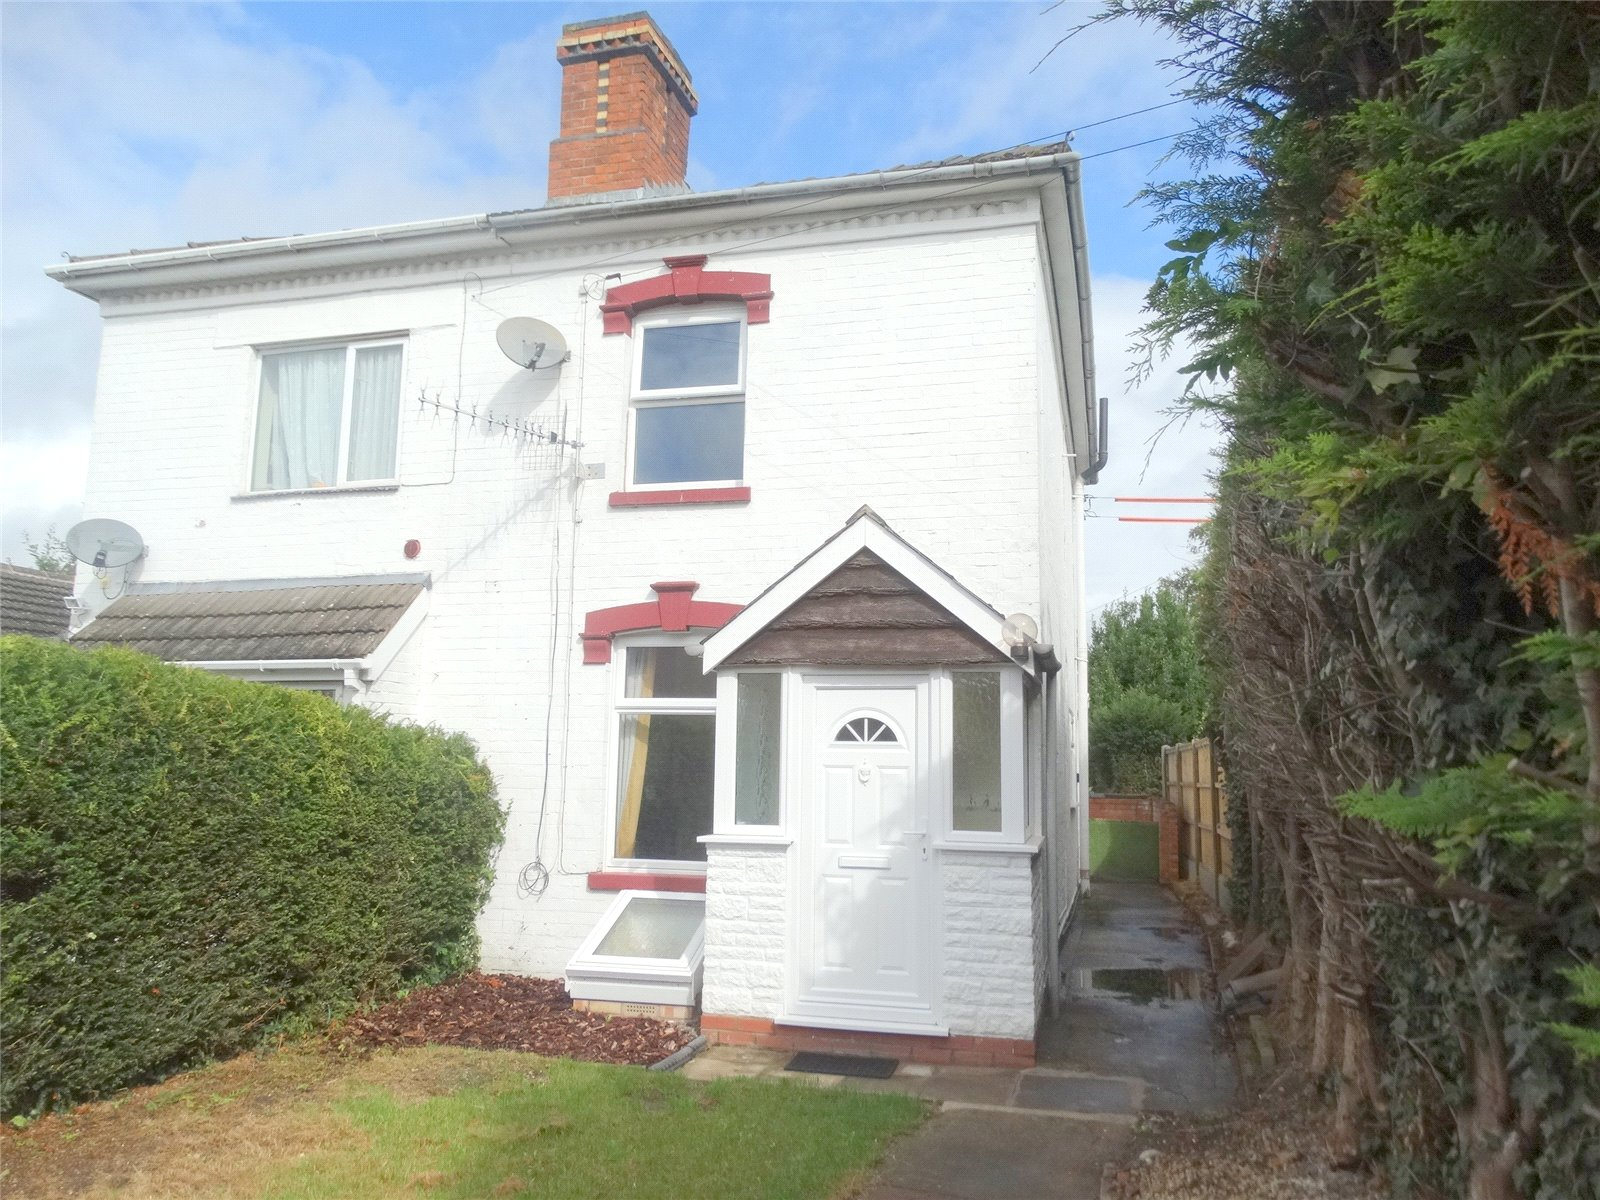 2 Bedrooms Semi Detached House for sale in Farley Street St Johns Worcester WR2